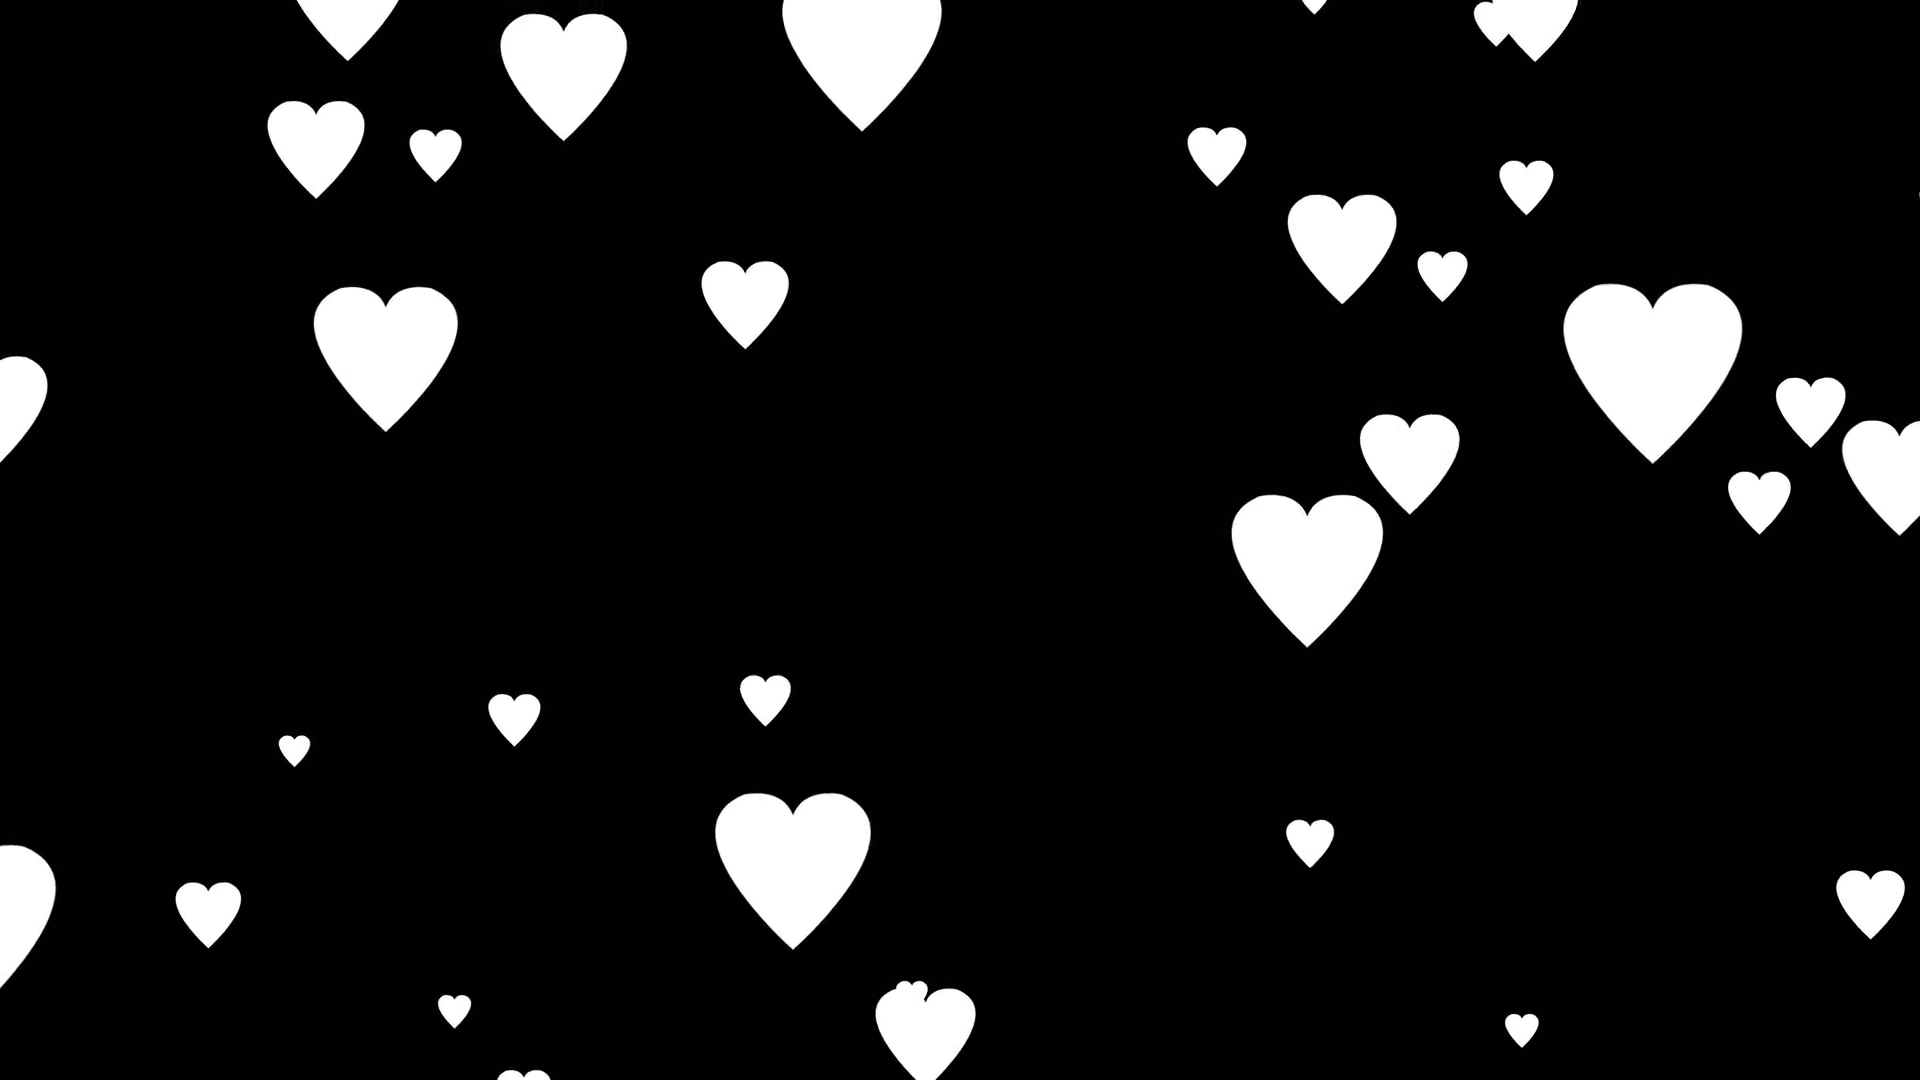 Falling white cartoon hearts over black backgrounds very easy to use